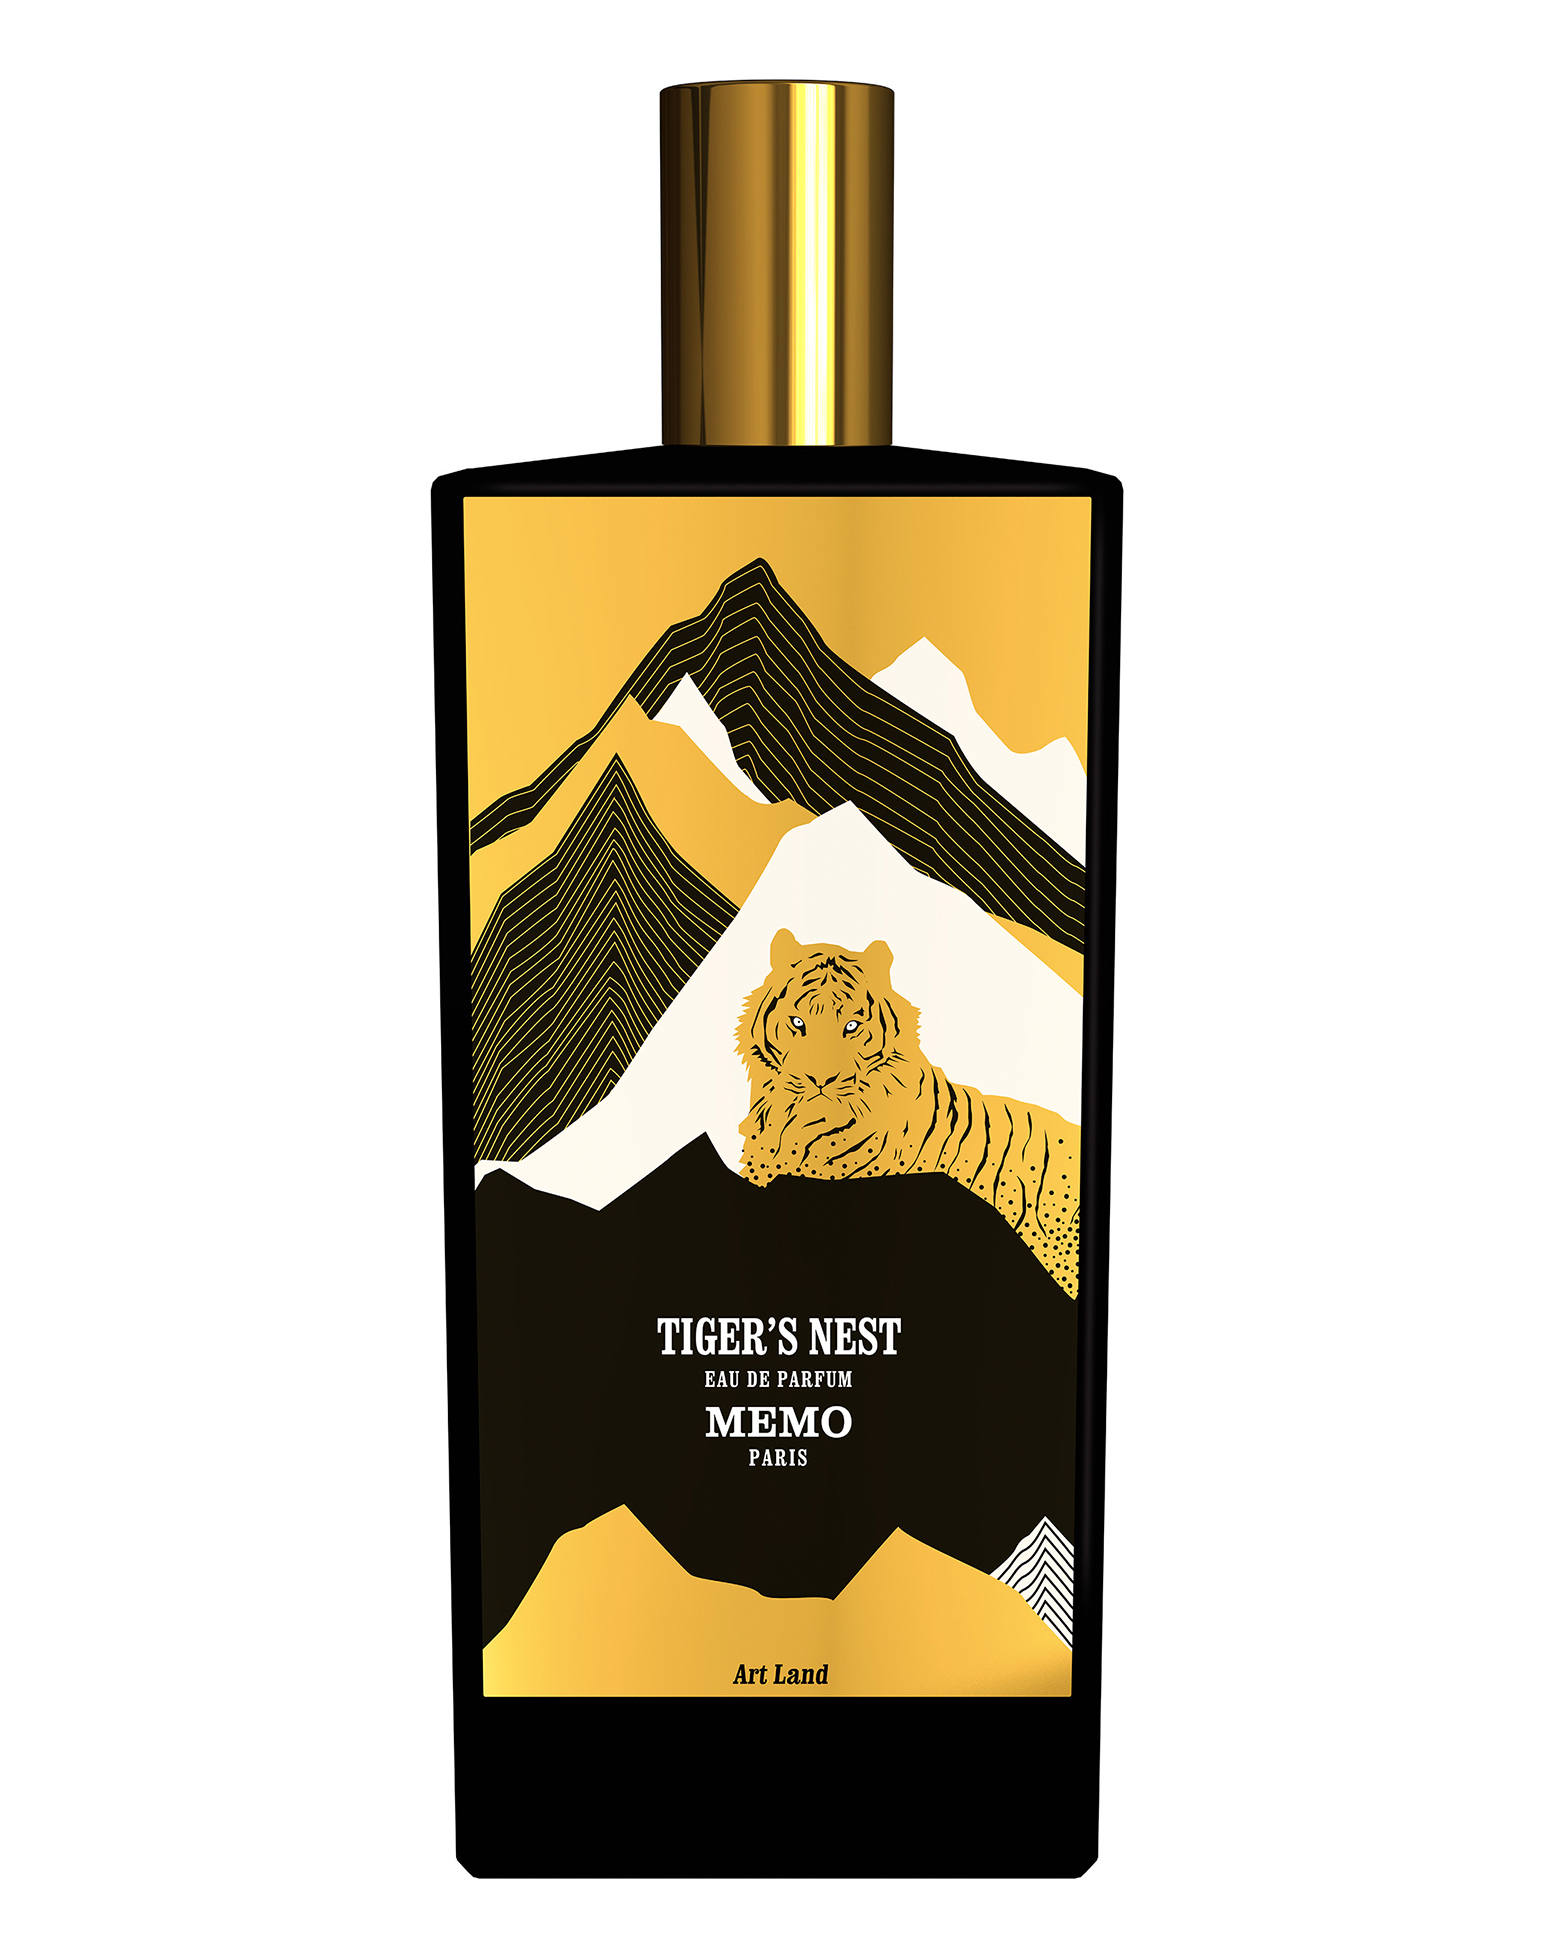 Memo Paris Tiger's Nest - Eau De Parfum for women and men 75 ml